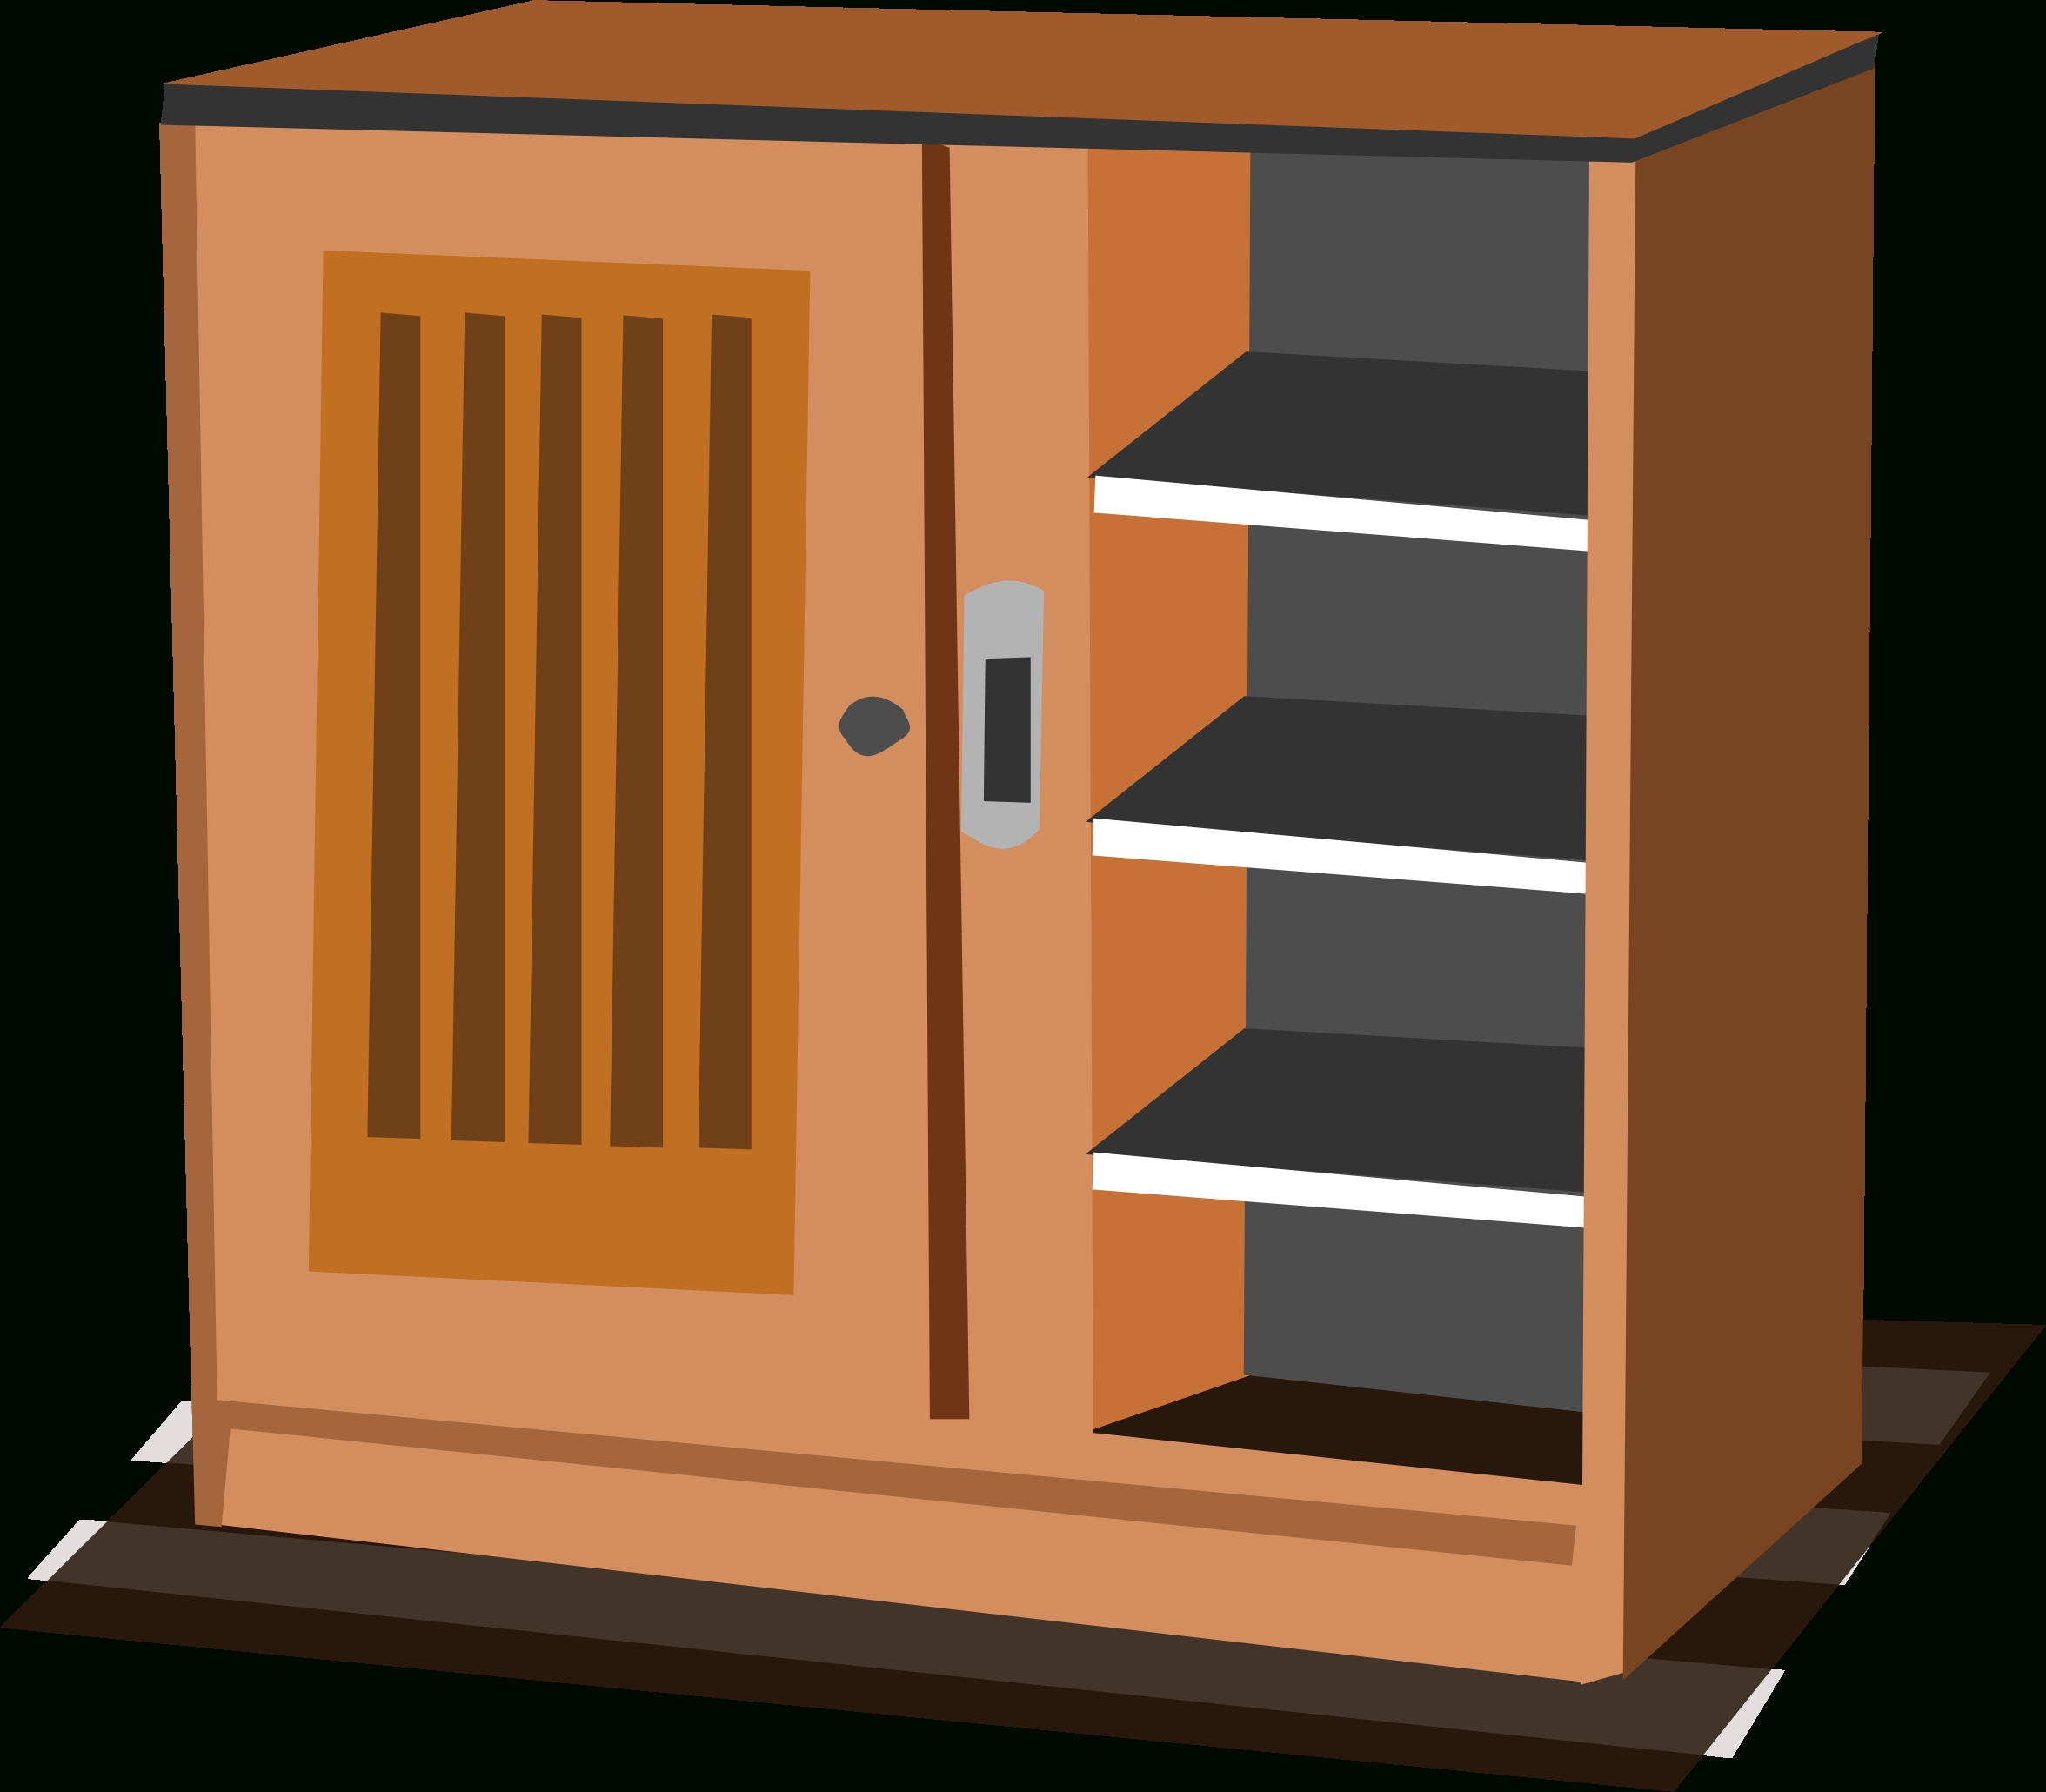 Library Cupboards With Regard To Preferred Cupboard Clipart Black And White – Clip Art Library (View 15 of 15)